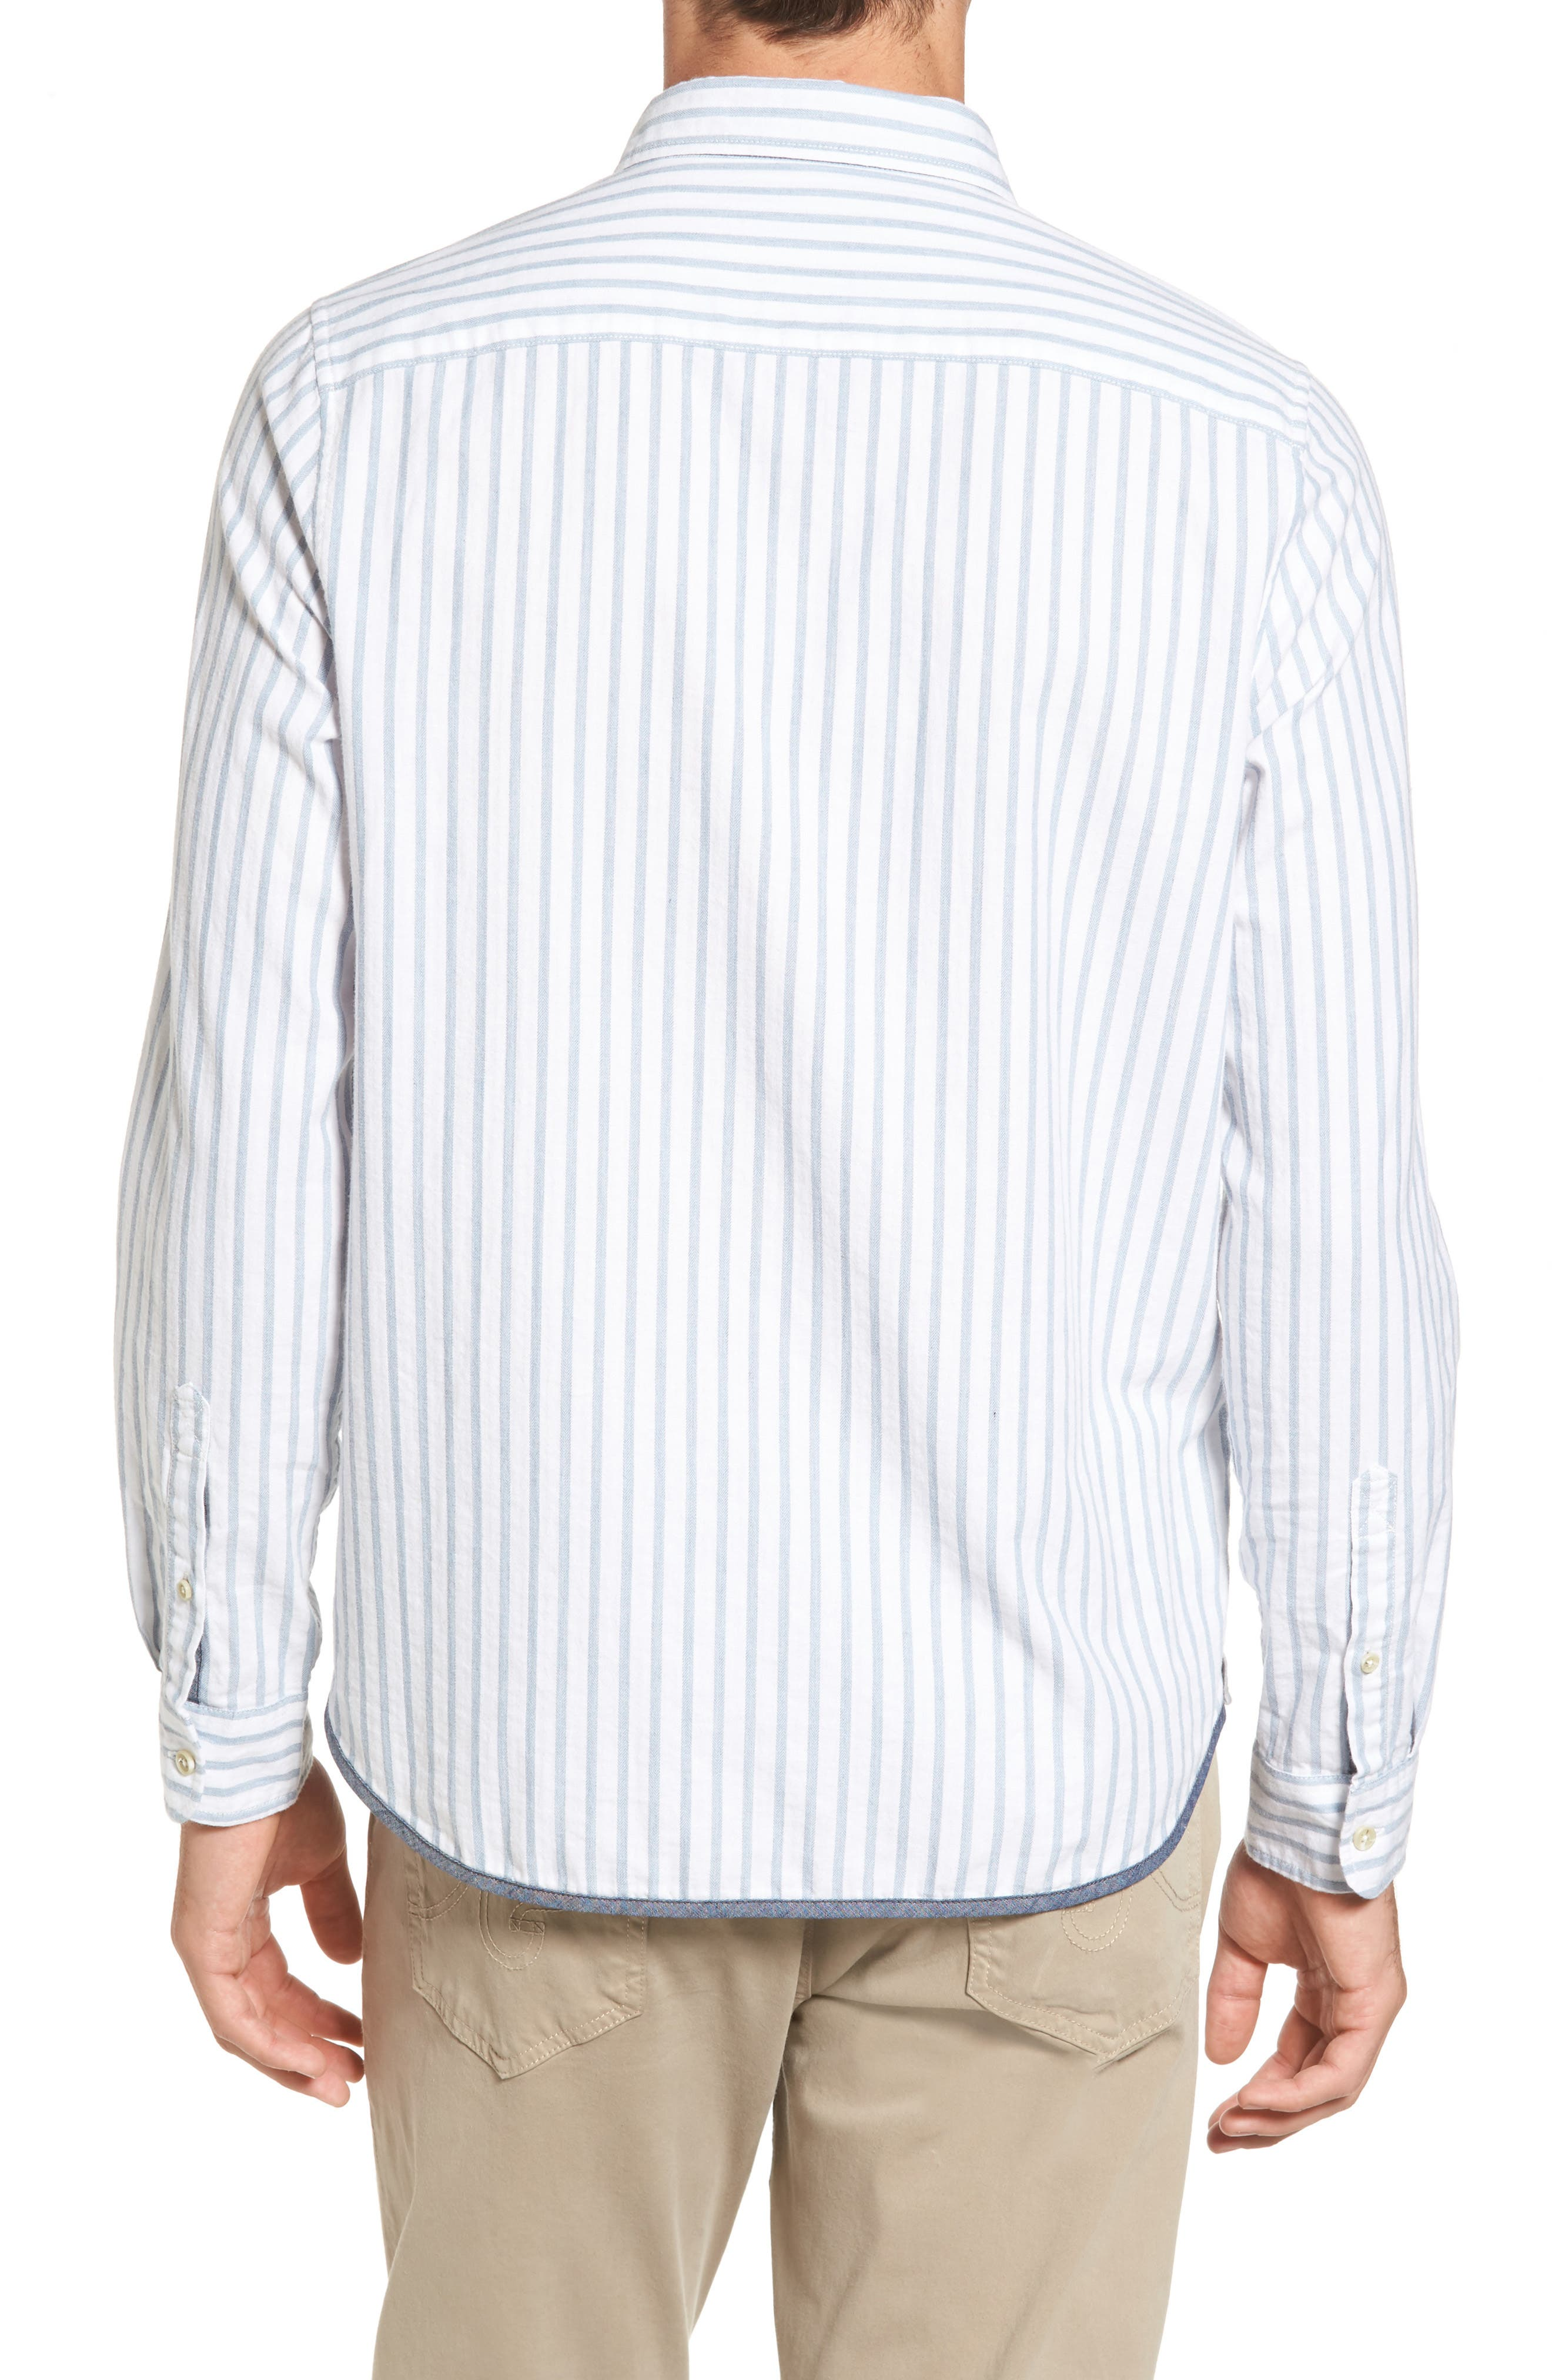 Alternate Image 2  - Michael Bastian Trim Fit Vertical Stripe Sport Shirt